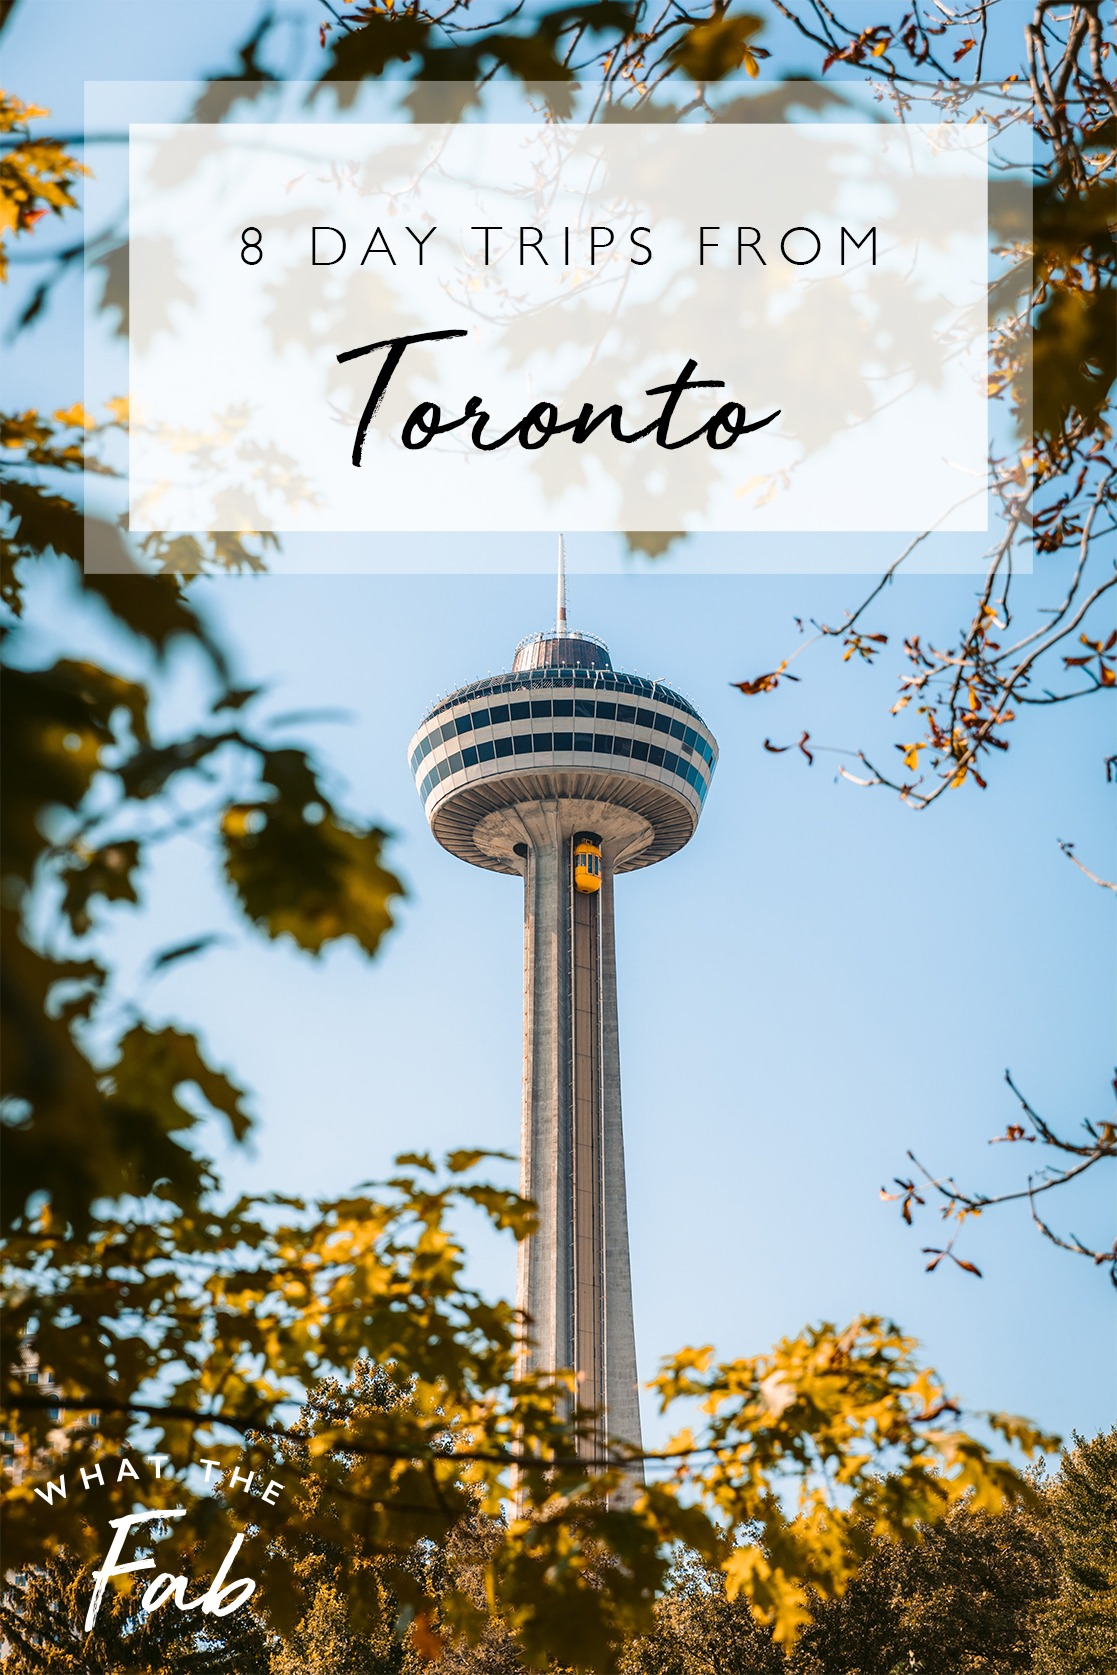 8 day trips from Toronto, by Travel Blogger What The Fab